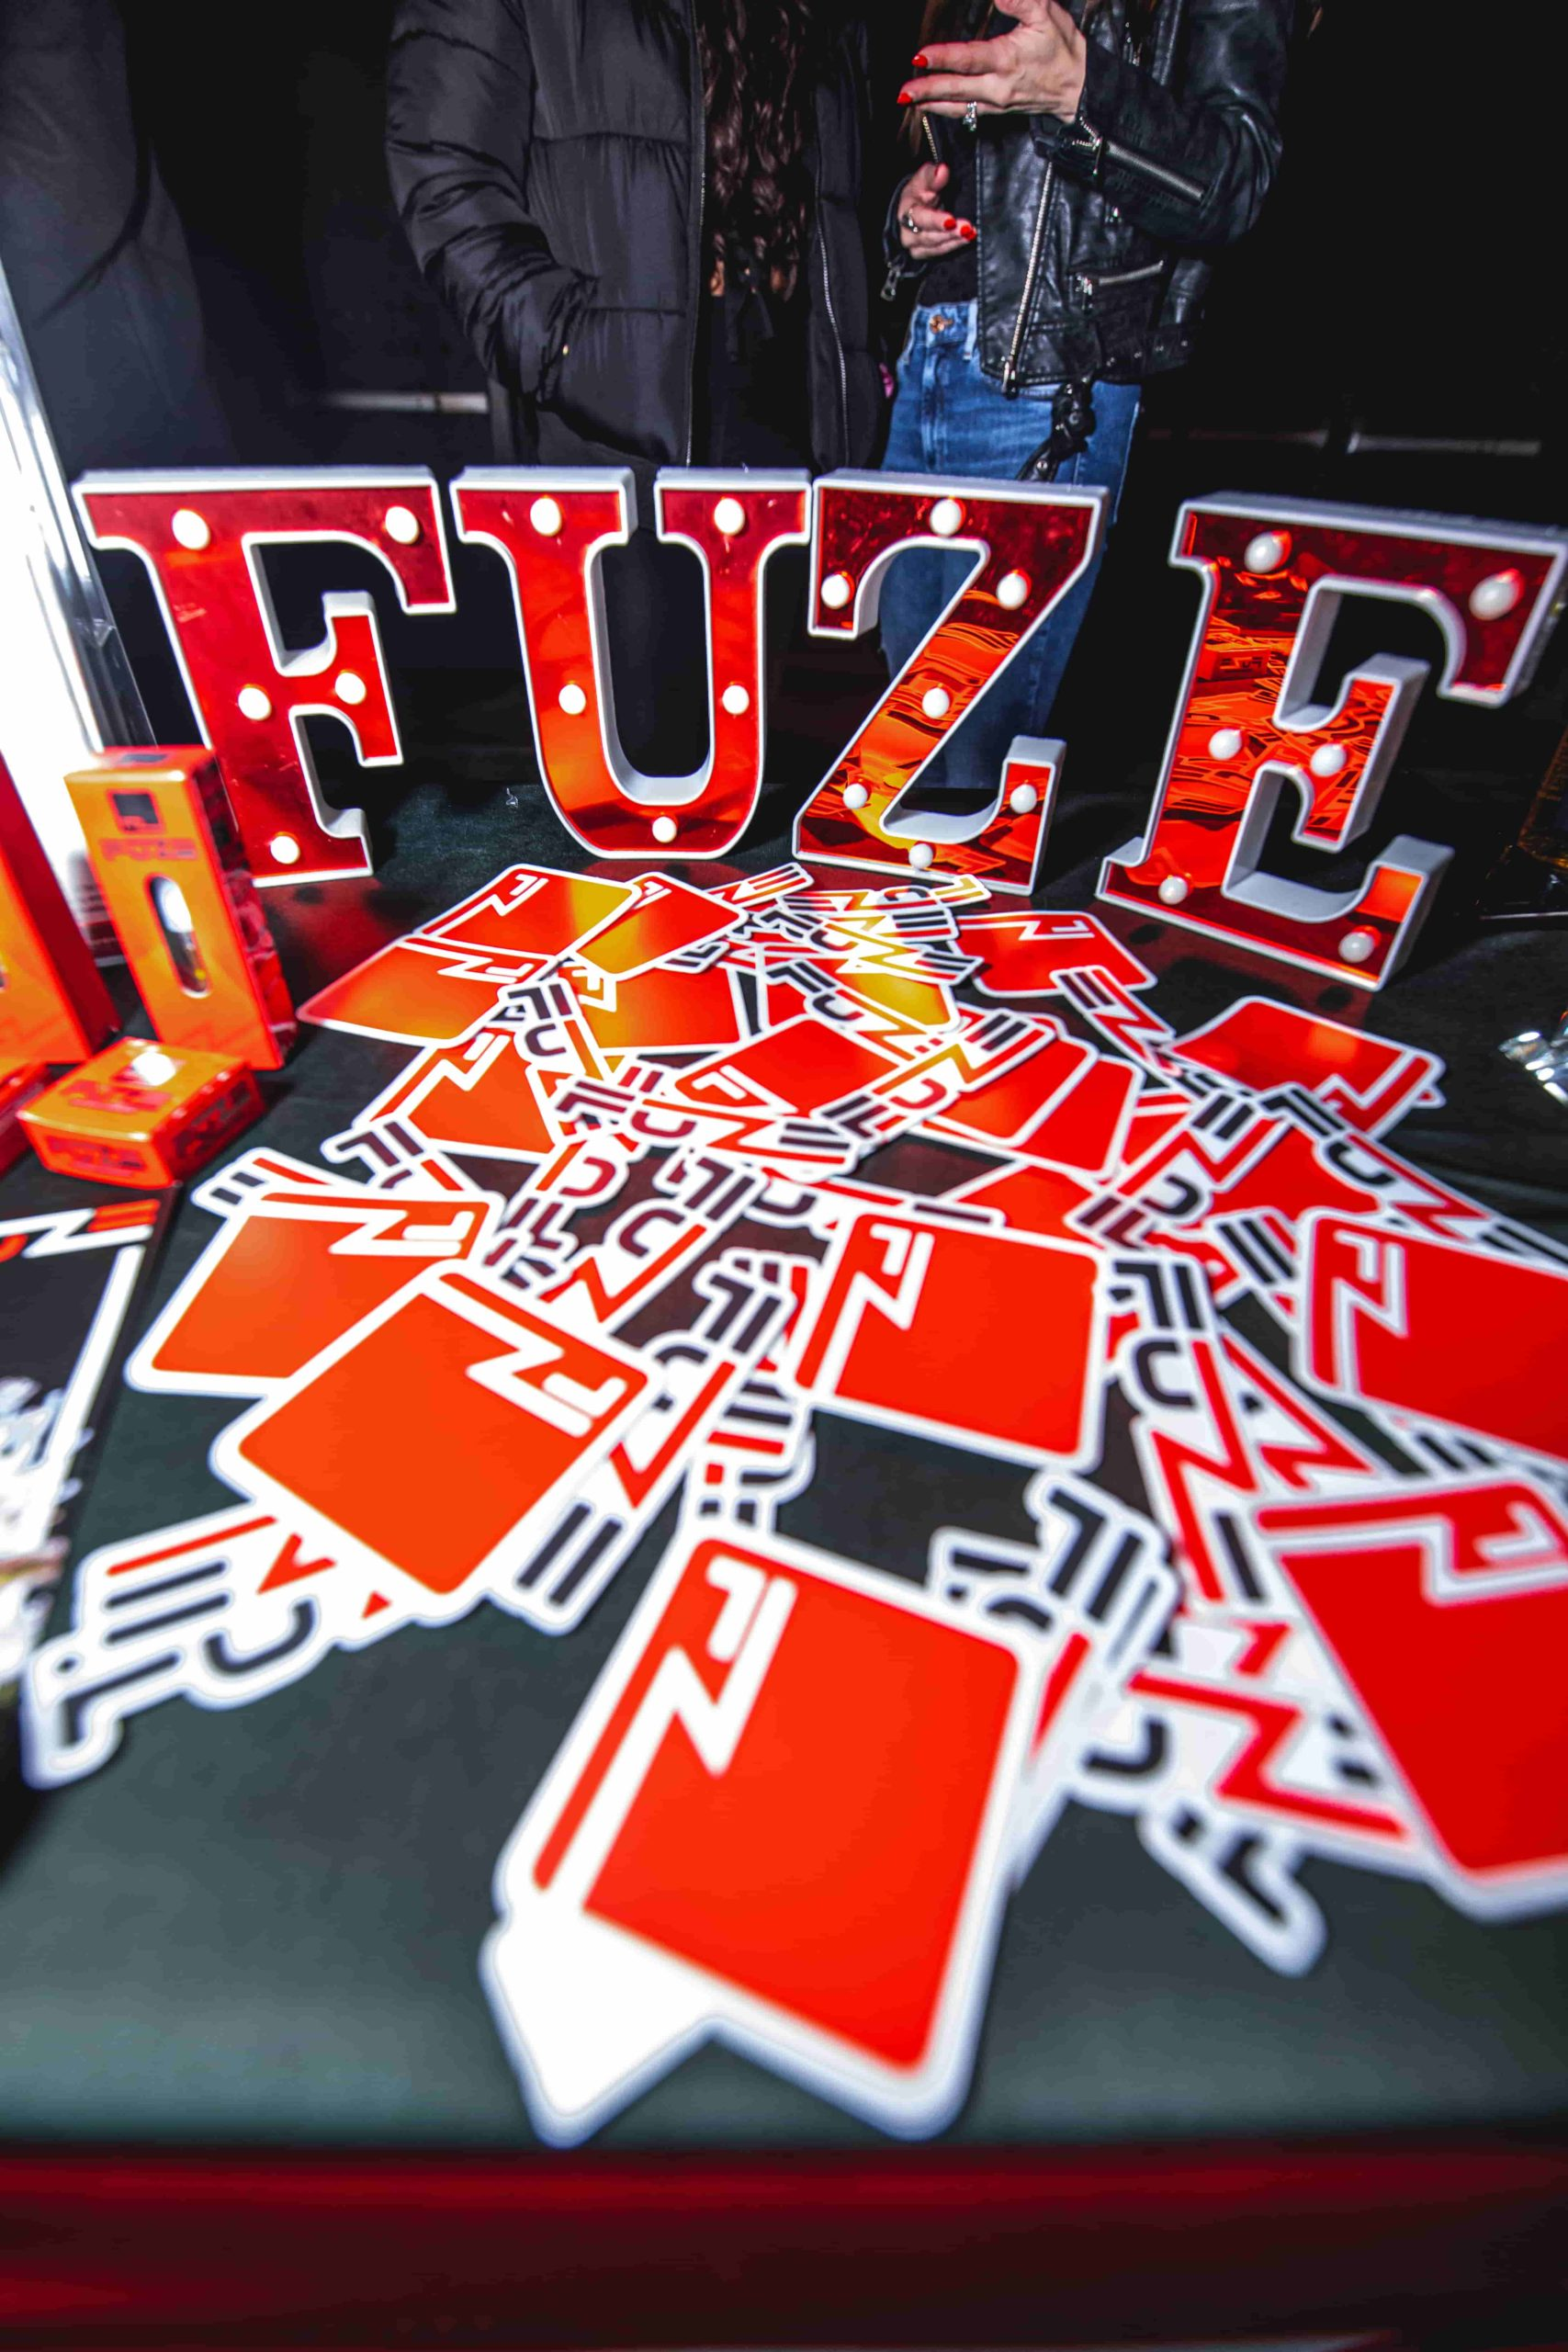 Fuze Extracts: Organically Made With Science